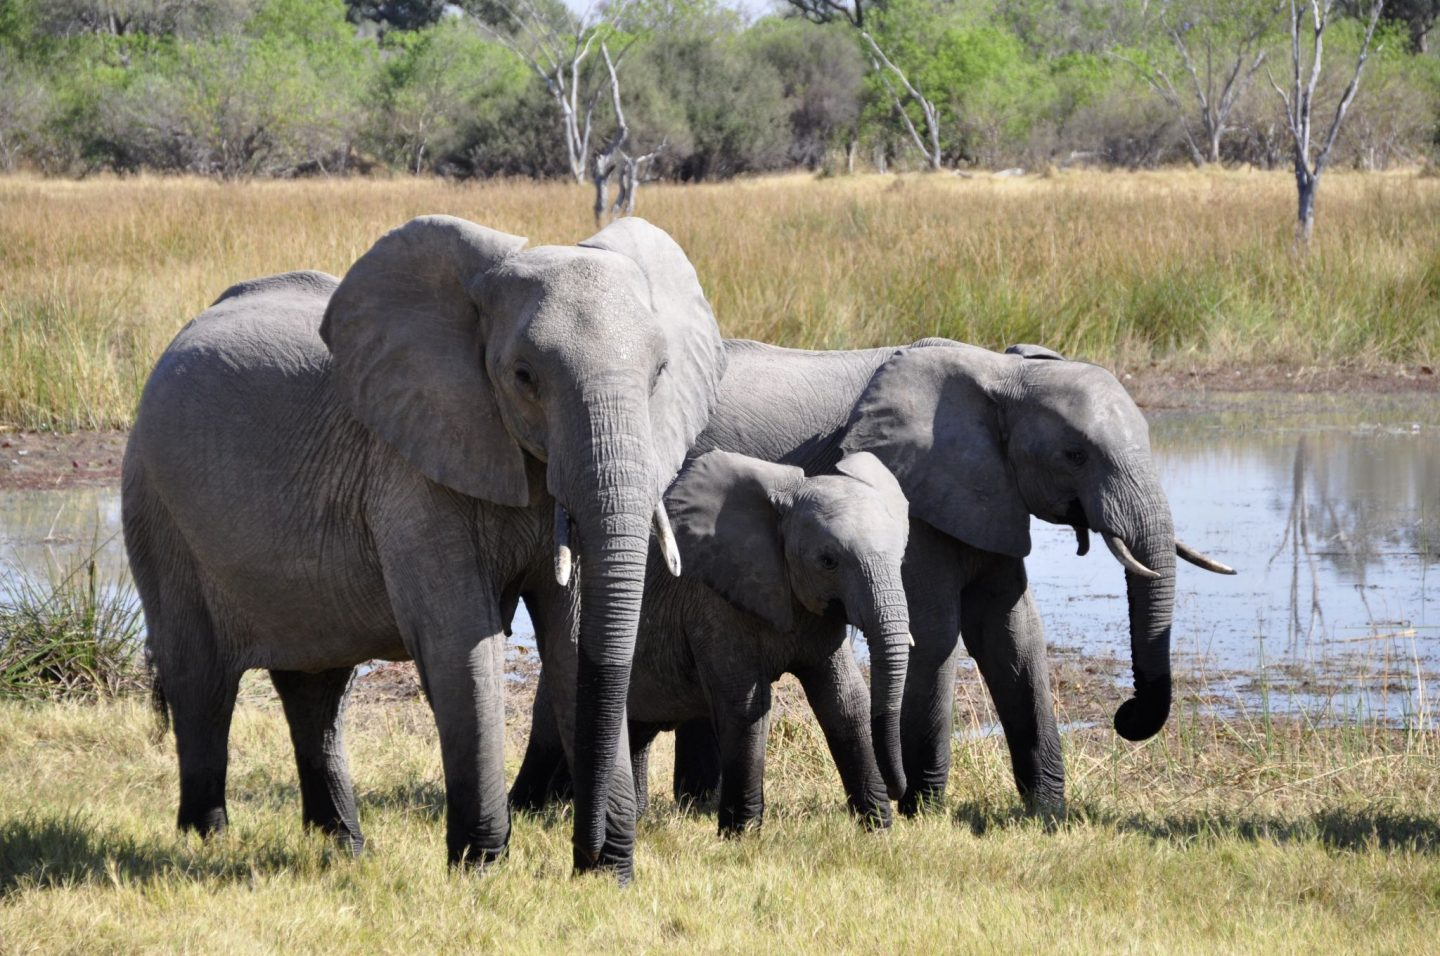 Elephant family in the savannah